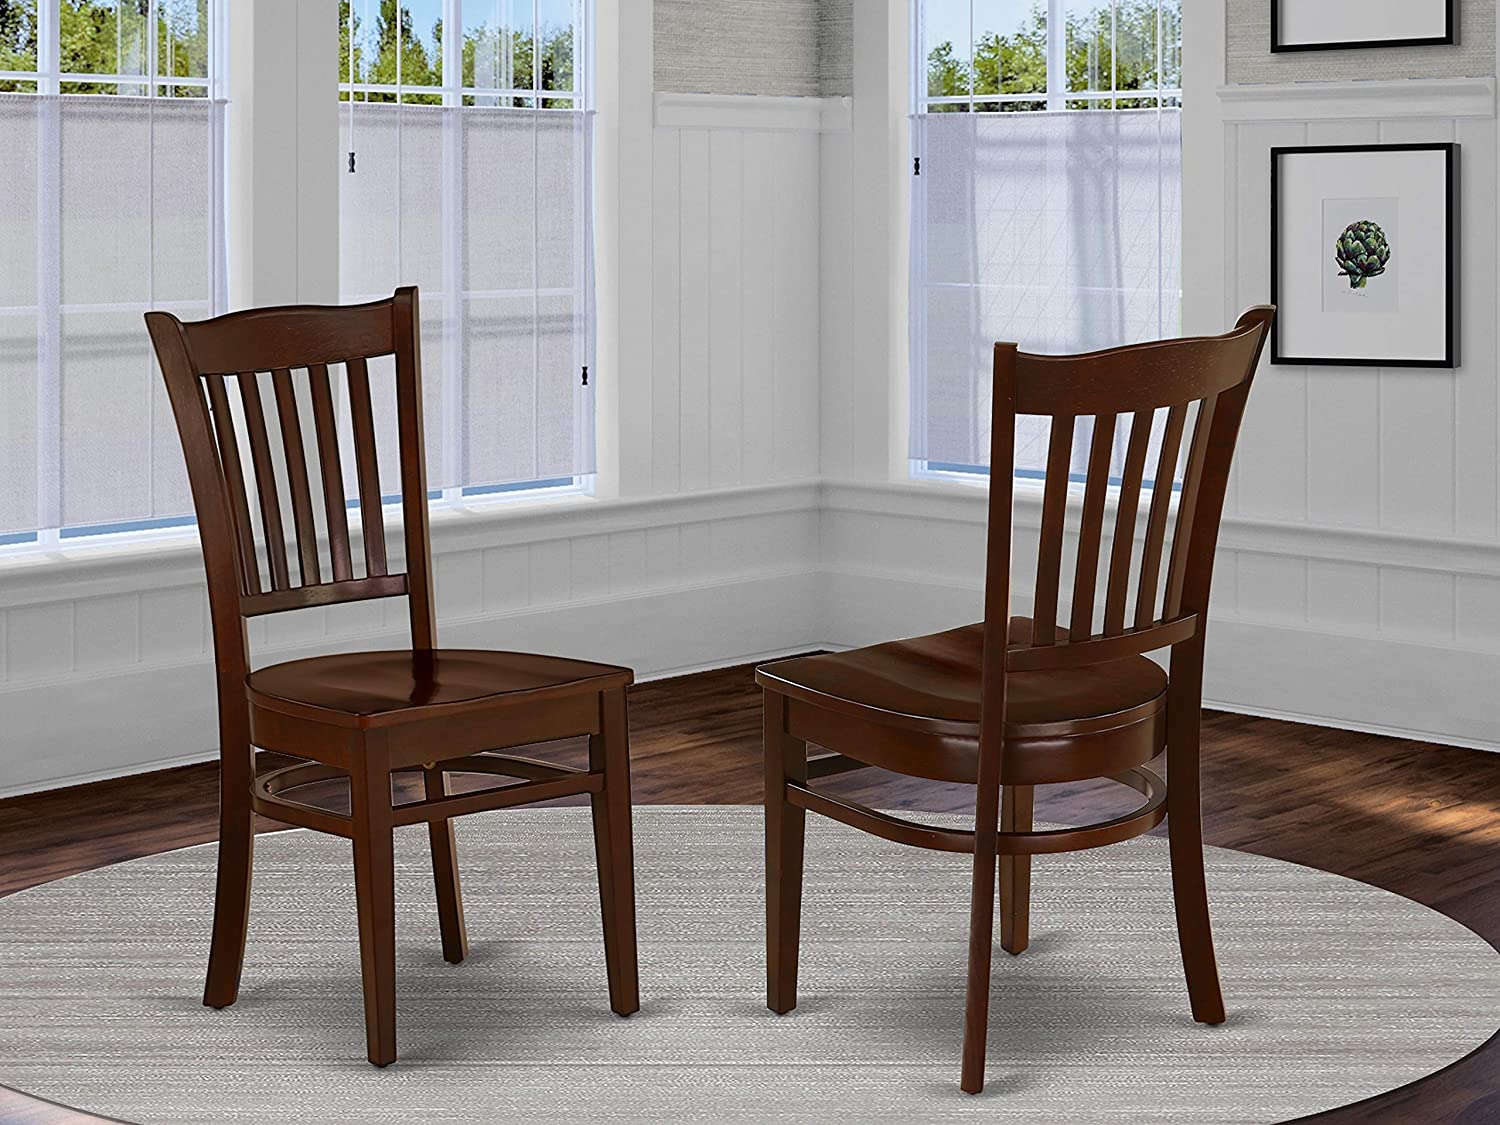 GRC-MAH-W Groton Dining Chair With Wood Seat In Mahogany Finish